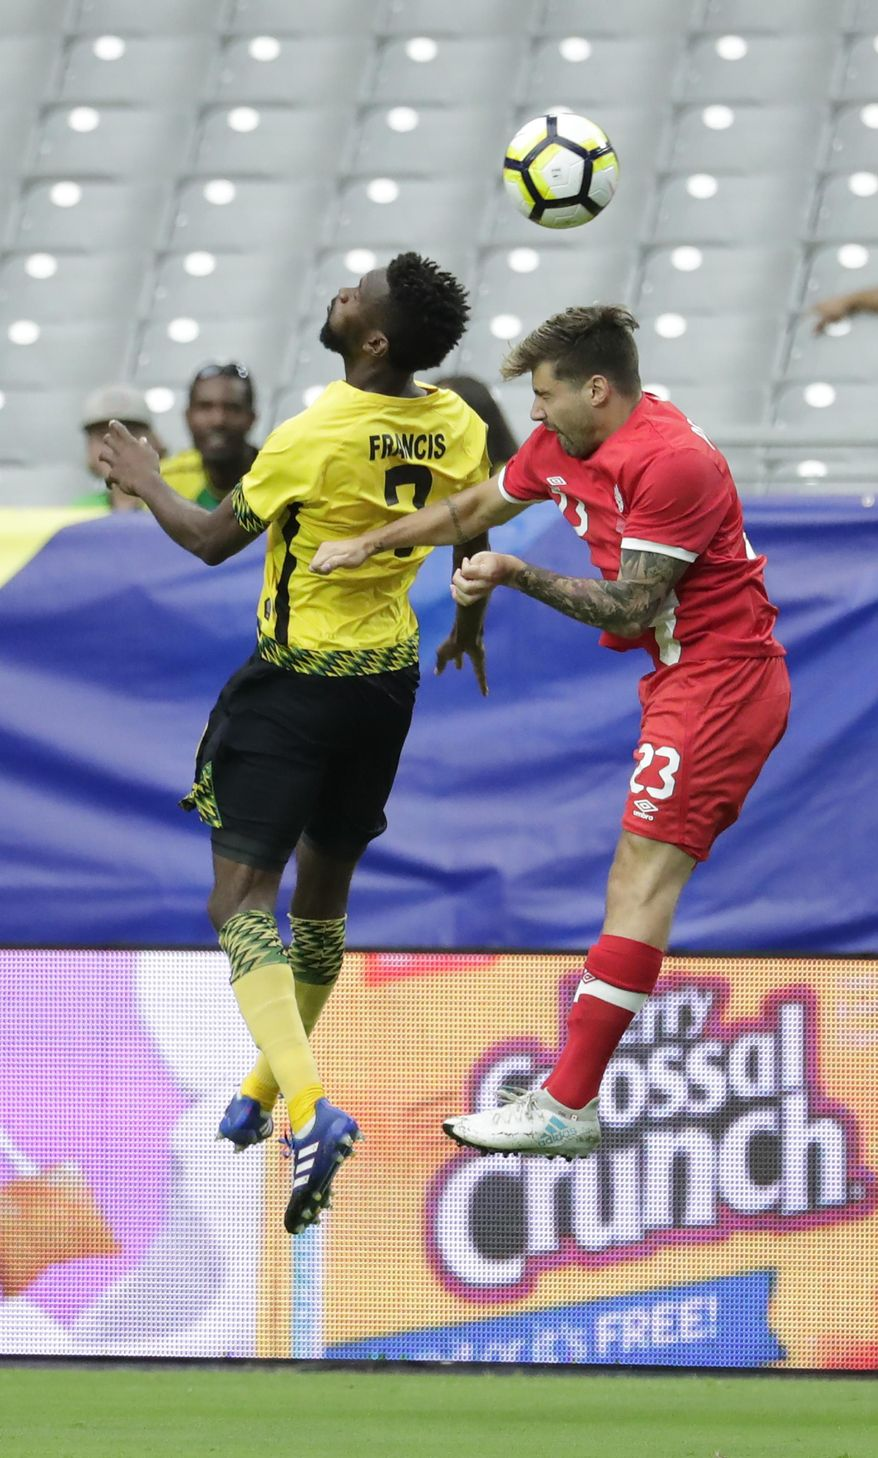 Jamaica's Shaun Francis, left, goes for a header with Canada's Michael Petrasso during a CONCACAF Gold Cup quarterfinal soccer match, Thursday, July 20, 2017, in Glendale, Ariz. (AP Photo/Matt York)